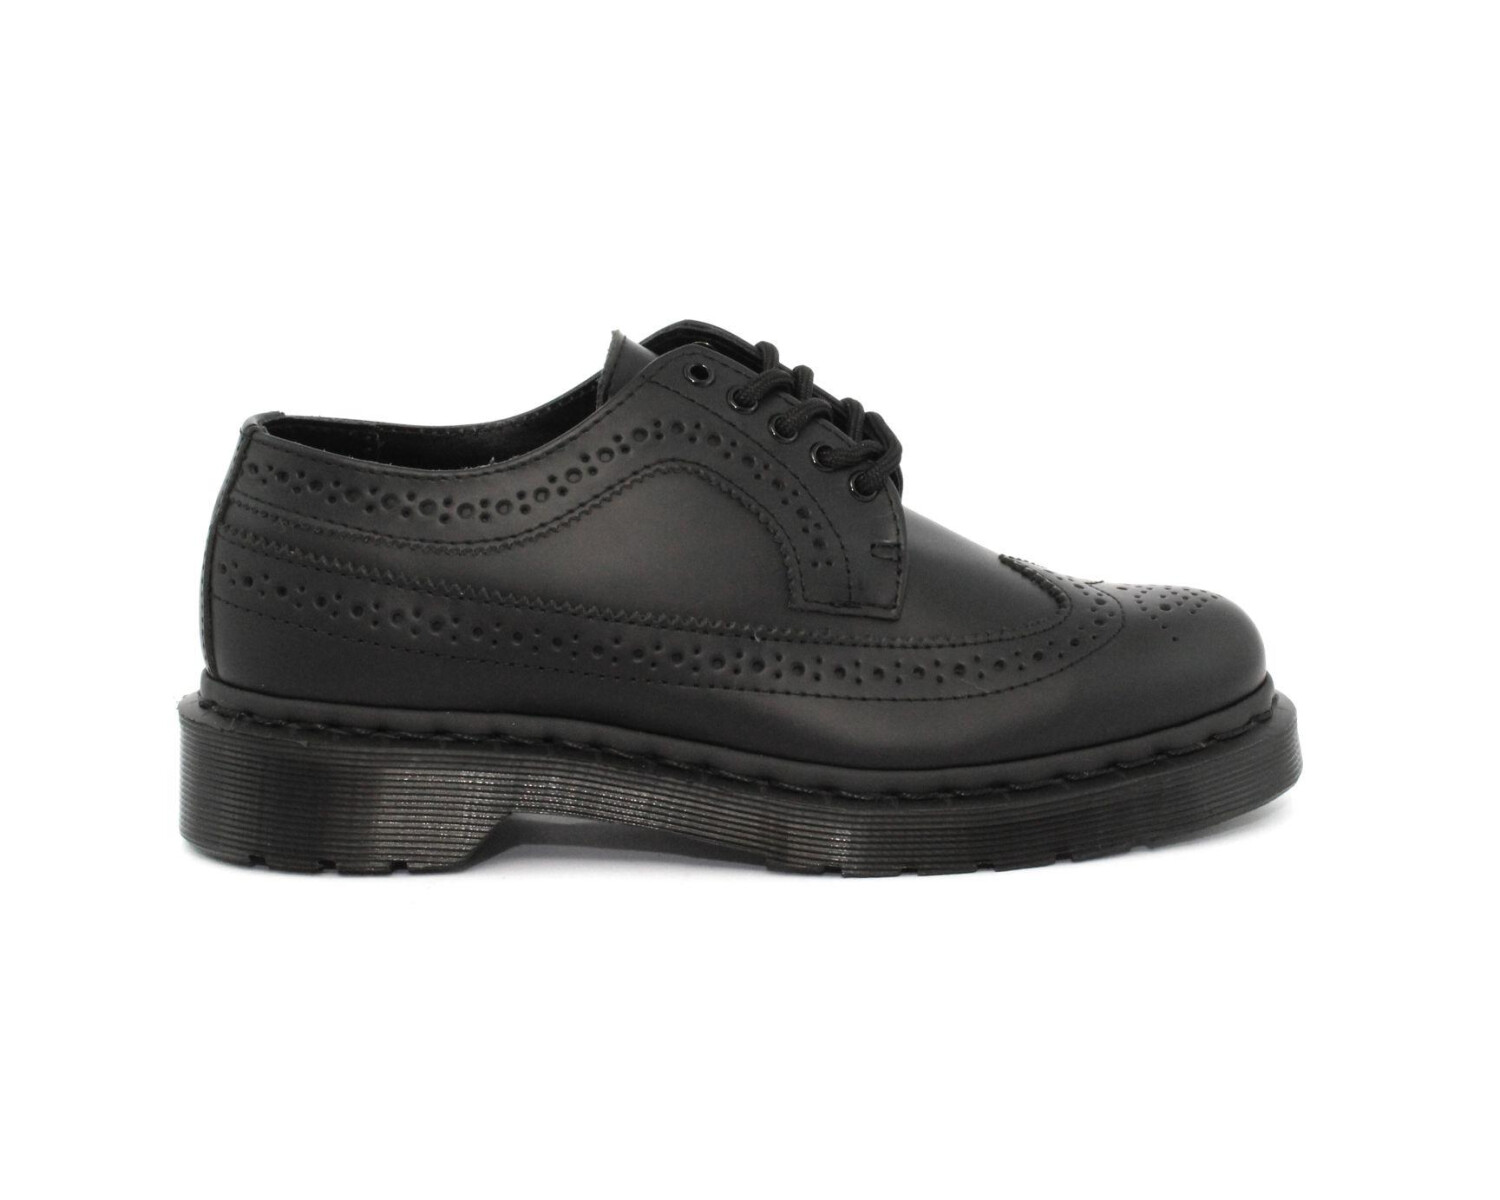 Stringata DR MARTENS 3989 Mono 22916001 Smooth Black